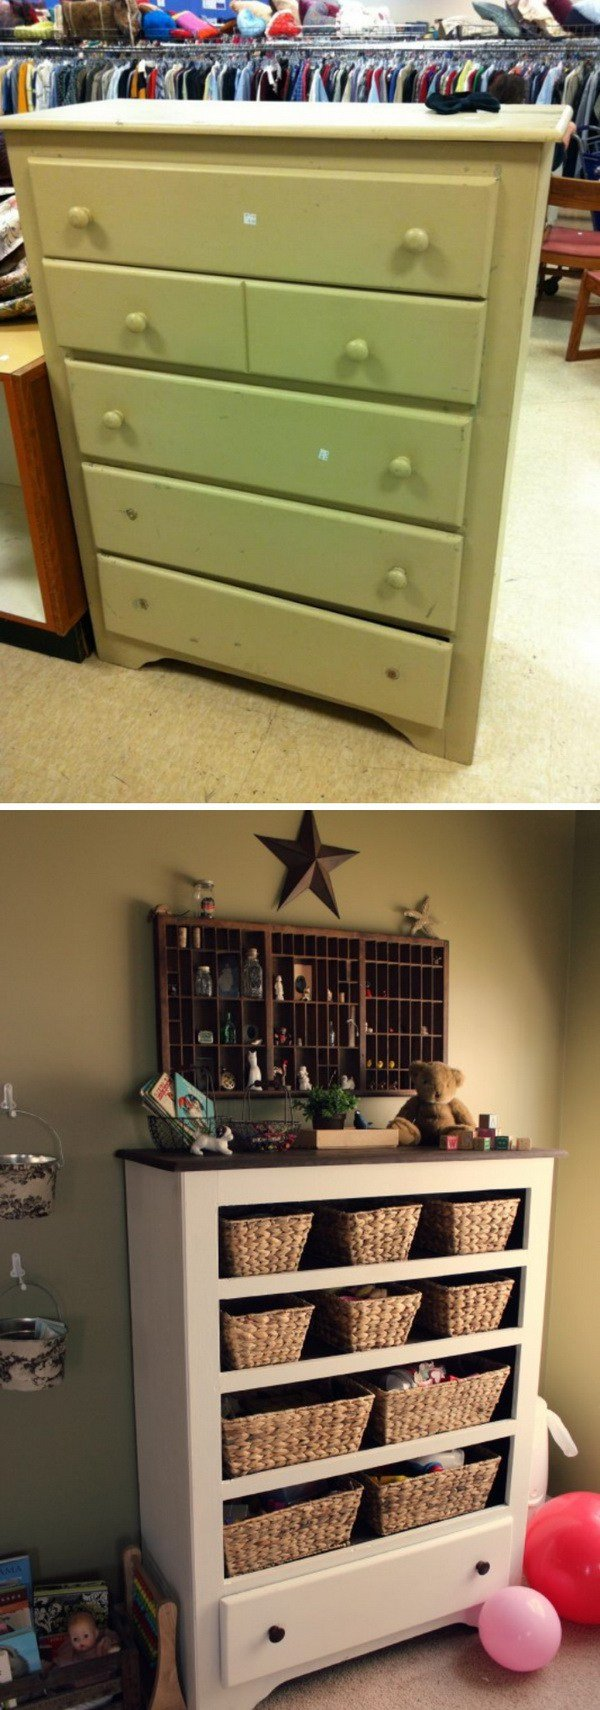 Pimp Hacks: Do it yourself Ideen für DIY Schrank